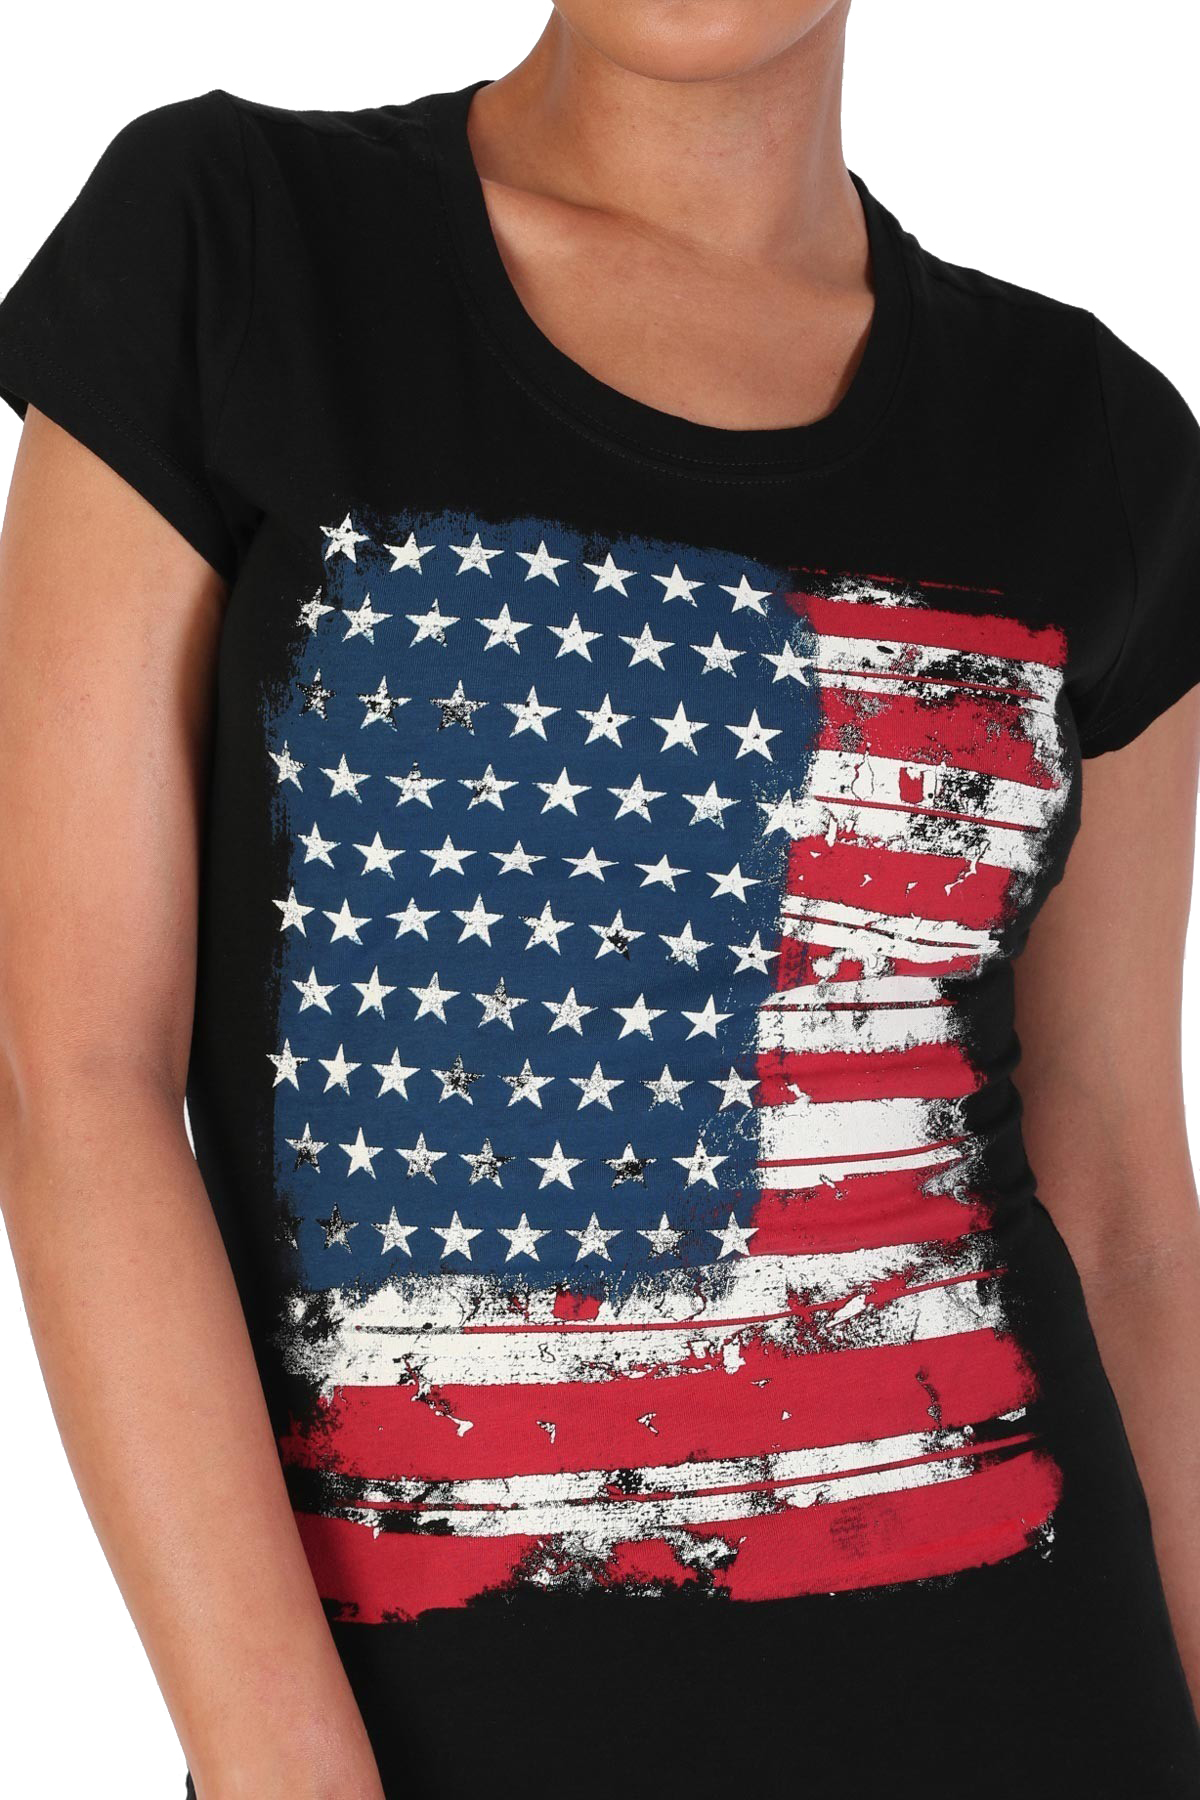 Women-039-s-Juniors-Patriotic-Casual-Graphic-Print-Short-Sleeve-T-Shirt-Top miniature 5